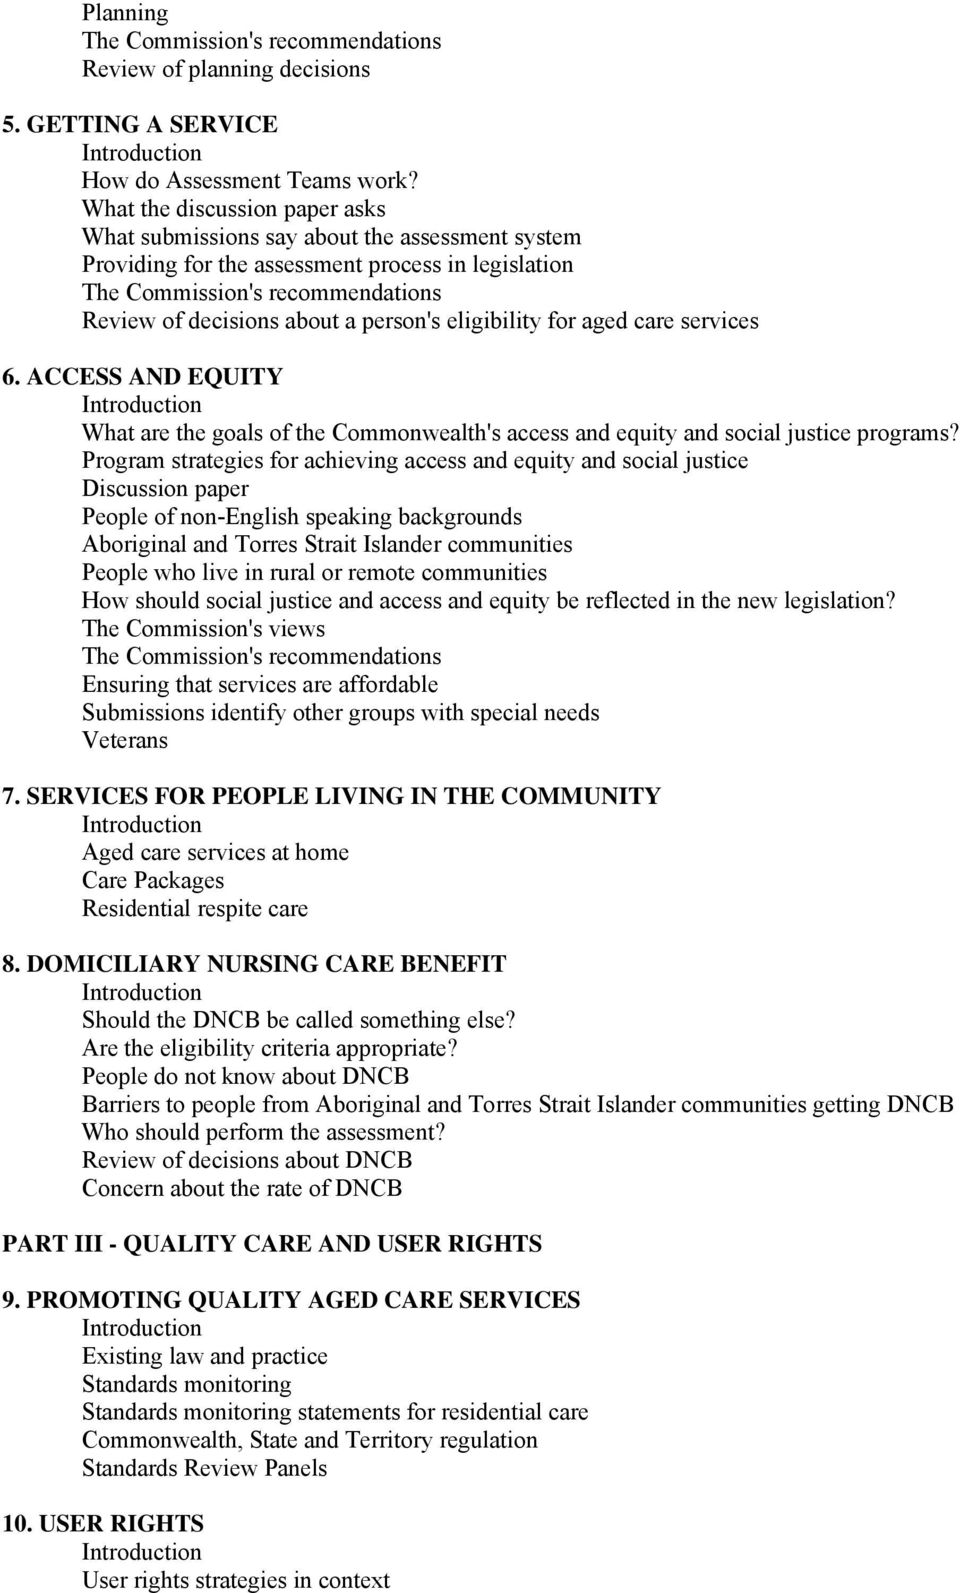 person's eligibility for aged care services 6. ACCESS AND EQUITY Introduction What are the goals of the Commonwealth's access and equity and social justice programs?